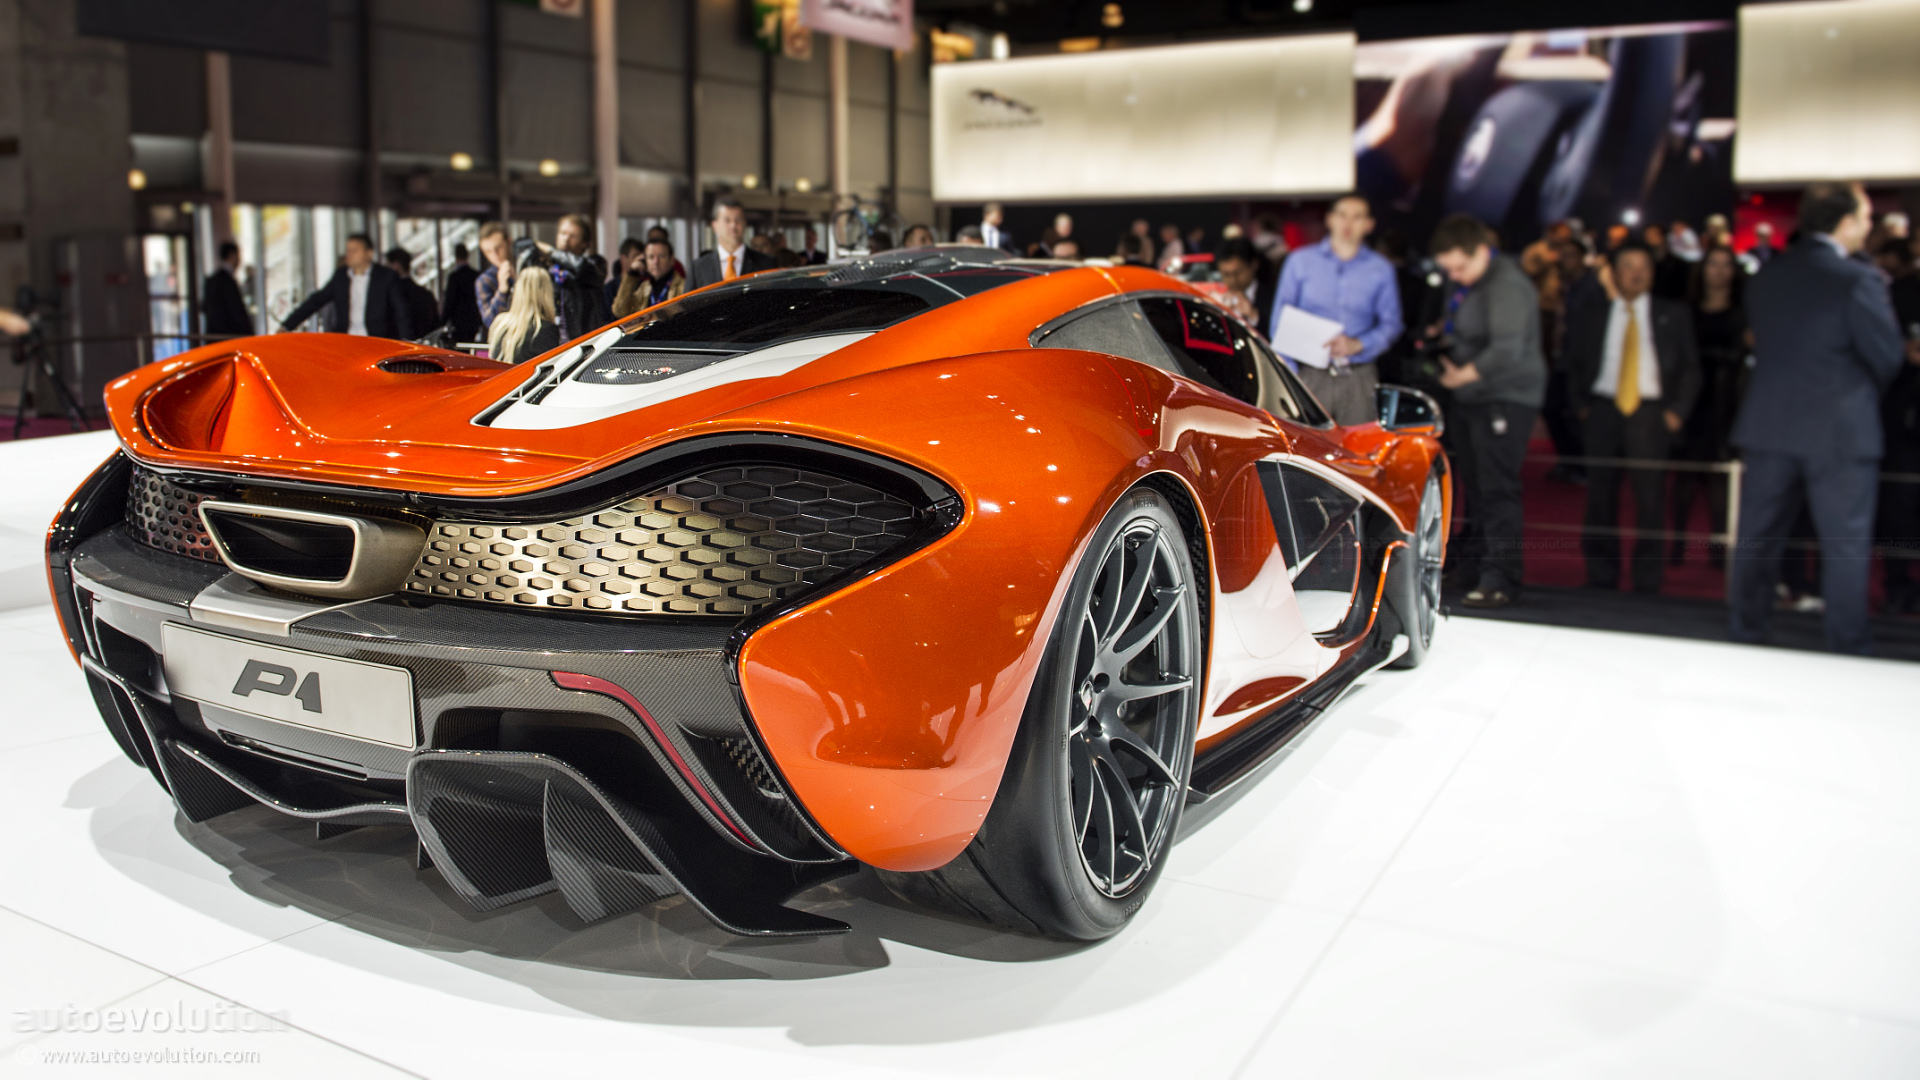 McLaren P1 Hypercar Concept Super Sports Car designed Free Download Image Of